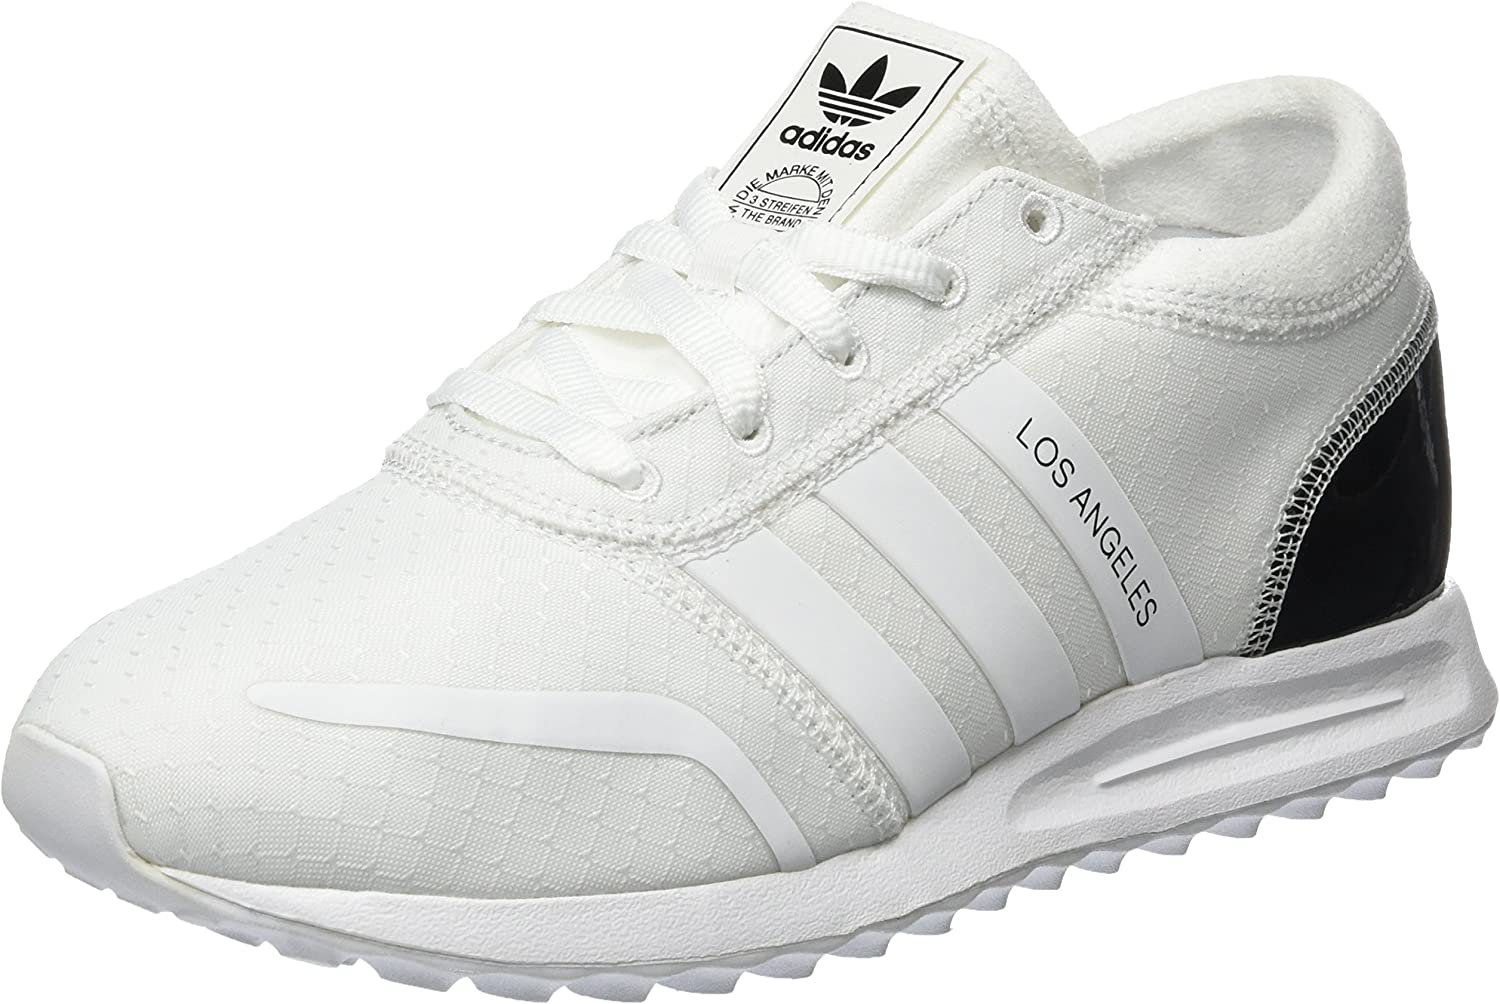 Adidas Damen Los Angeles Turnschuhe  | Up-to-date-styling